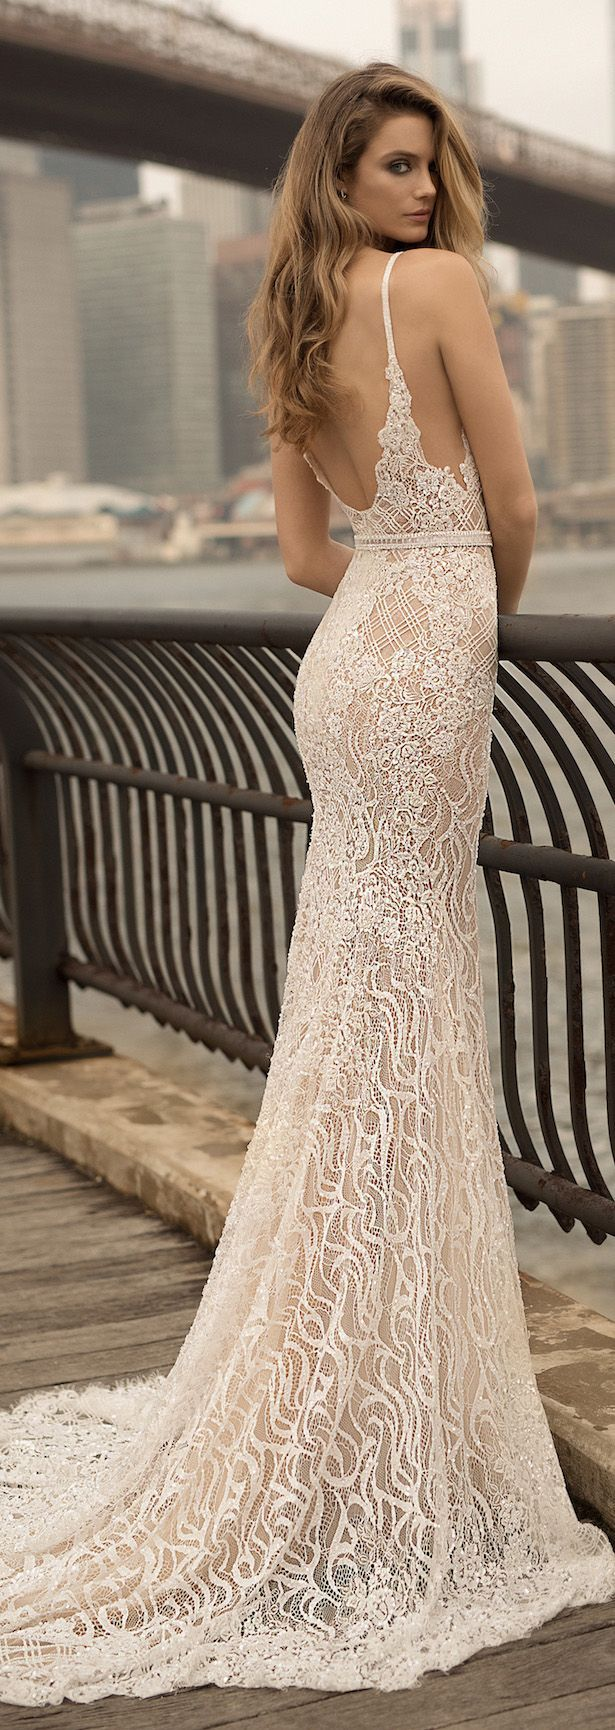 Berta Wedding Dress Collection Spring 2018 | Dress collection ...